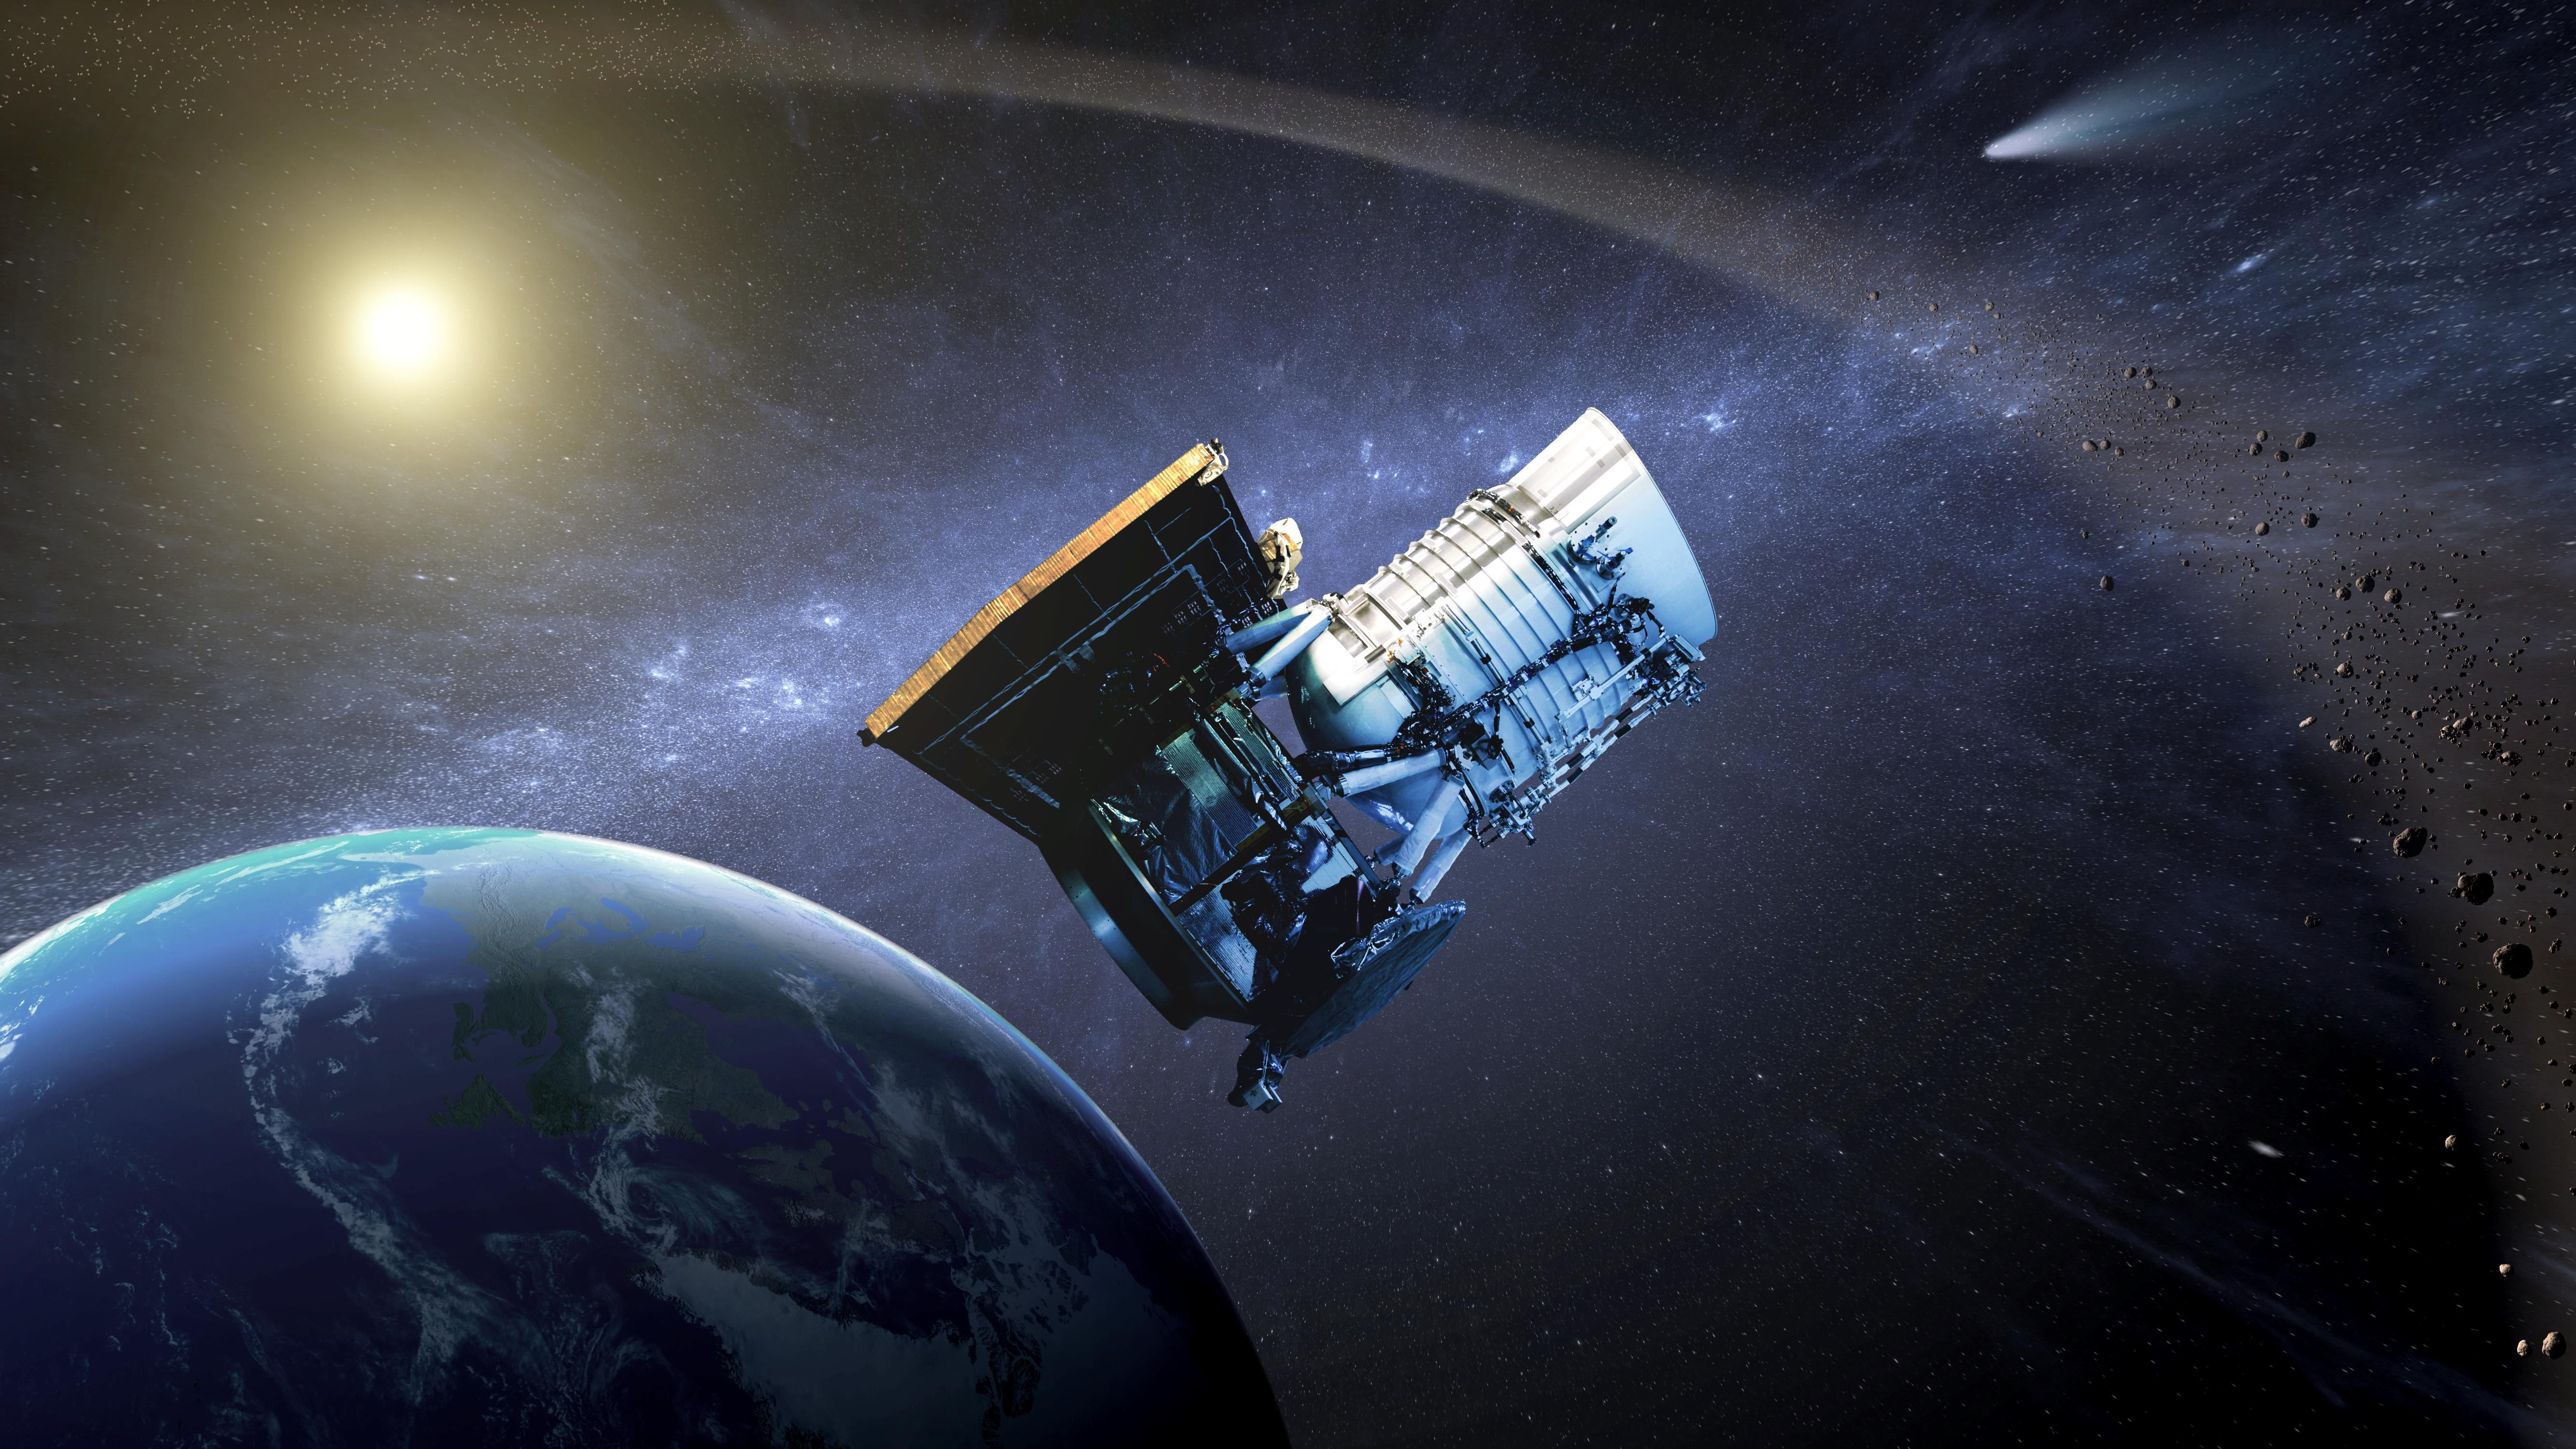 Artist's concept of NASA's NEOWISE spacecraft